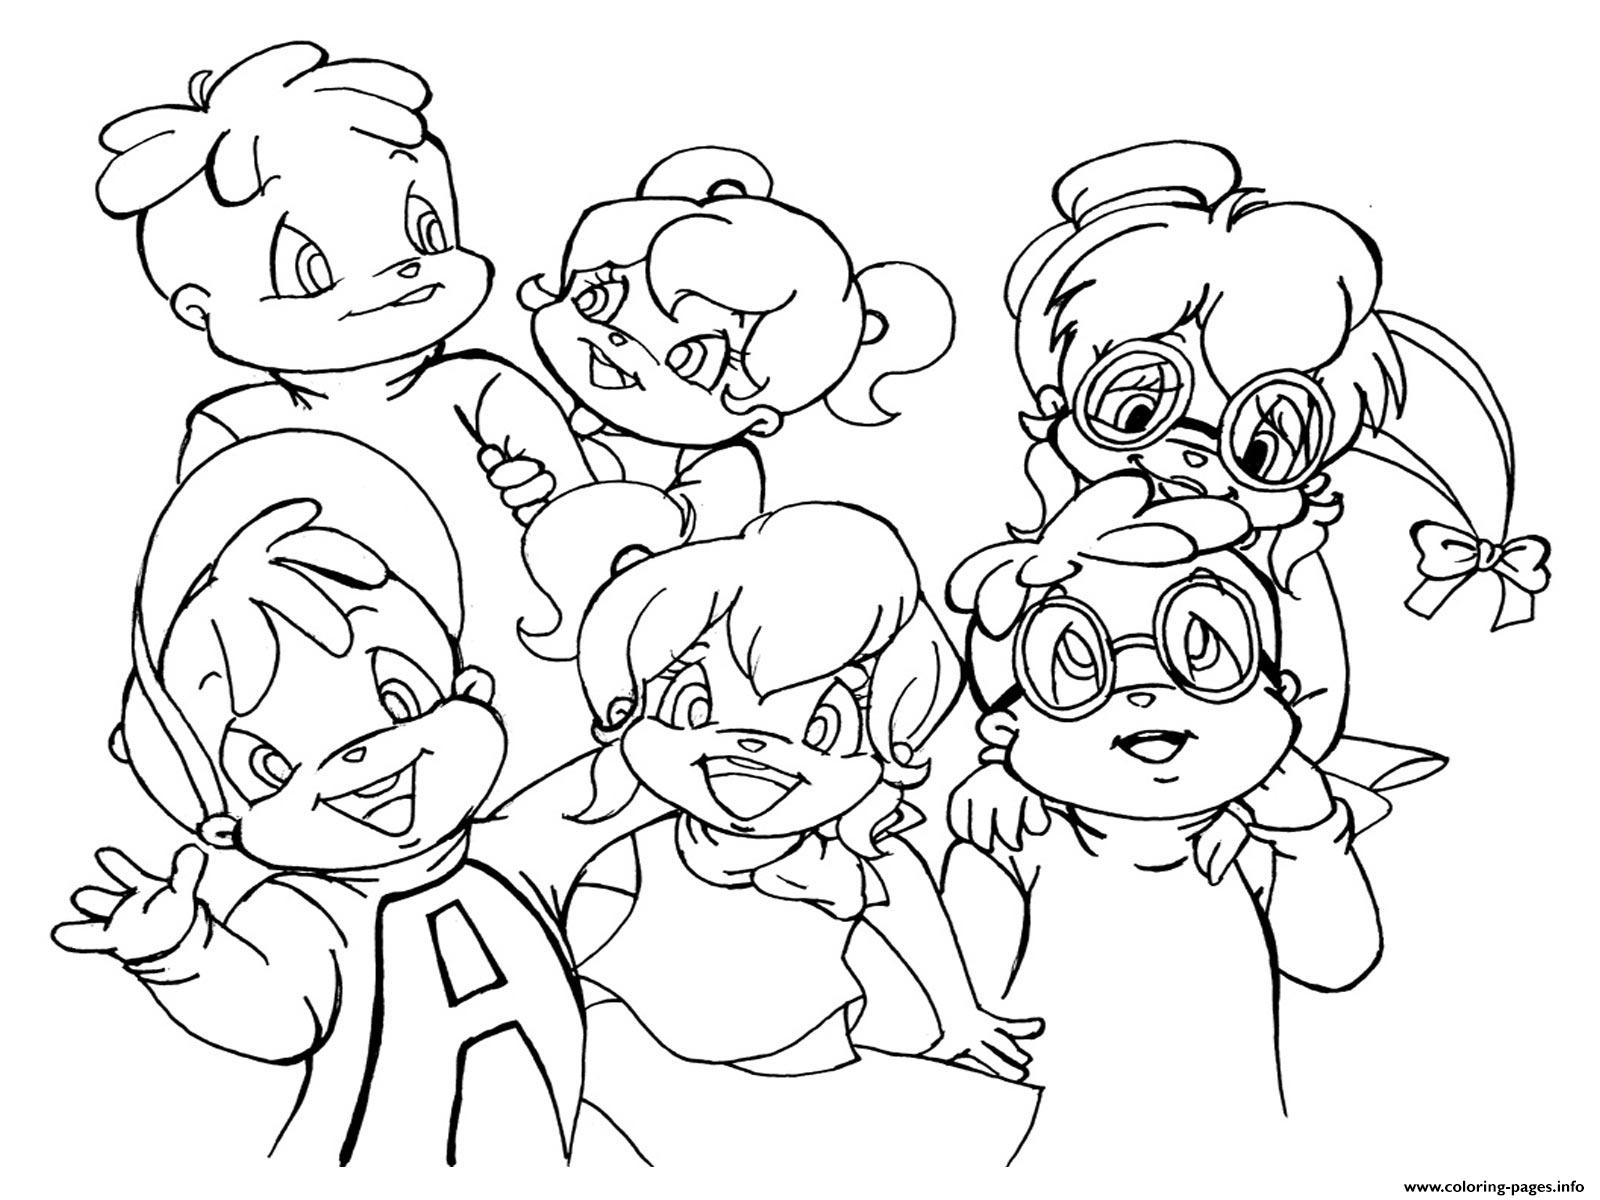 alvin and the chipmunks and chipettes s8fa2 Coloring pages Printable